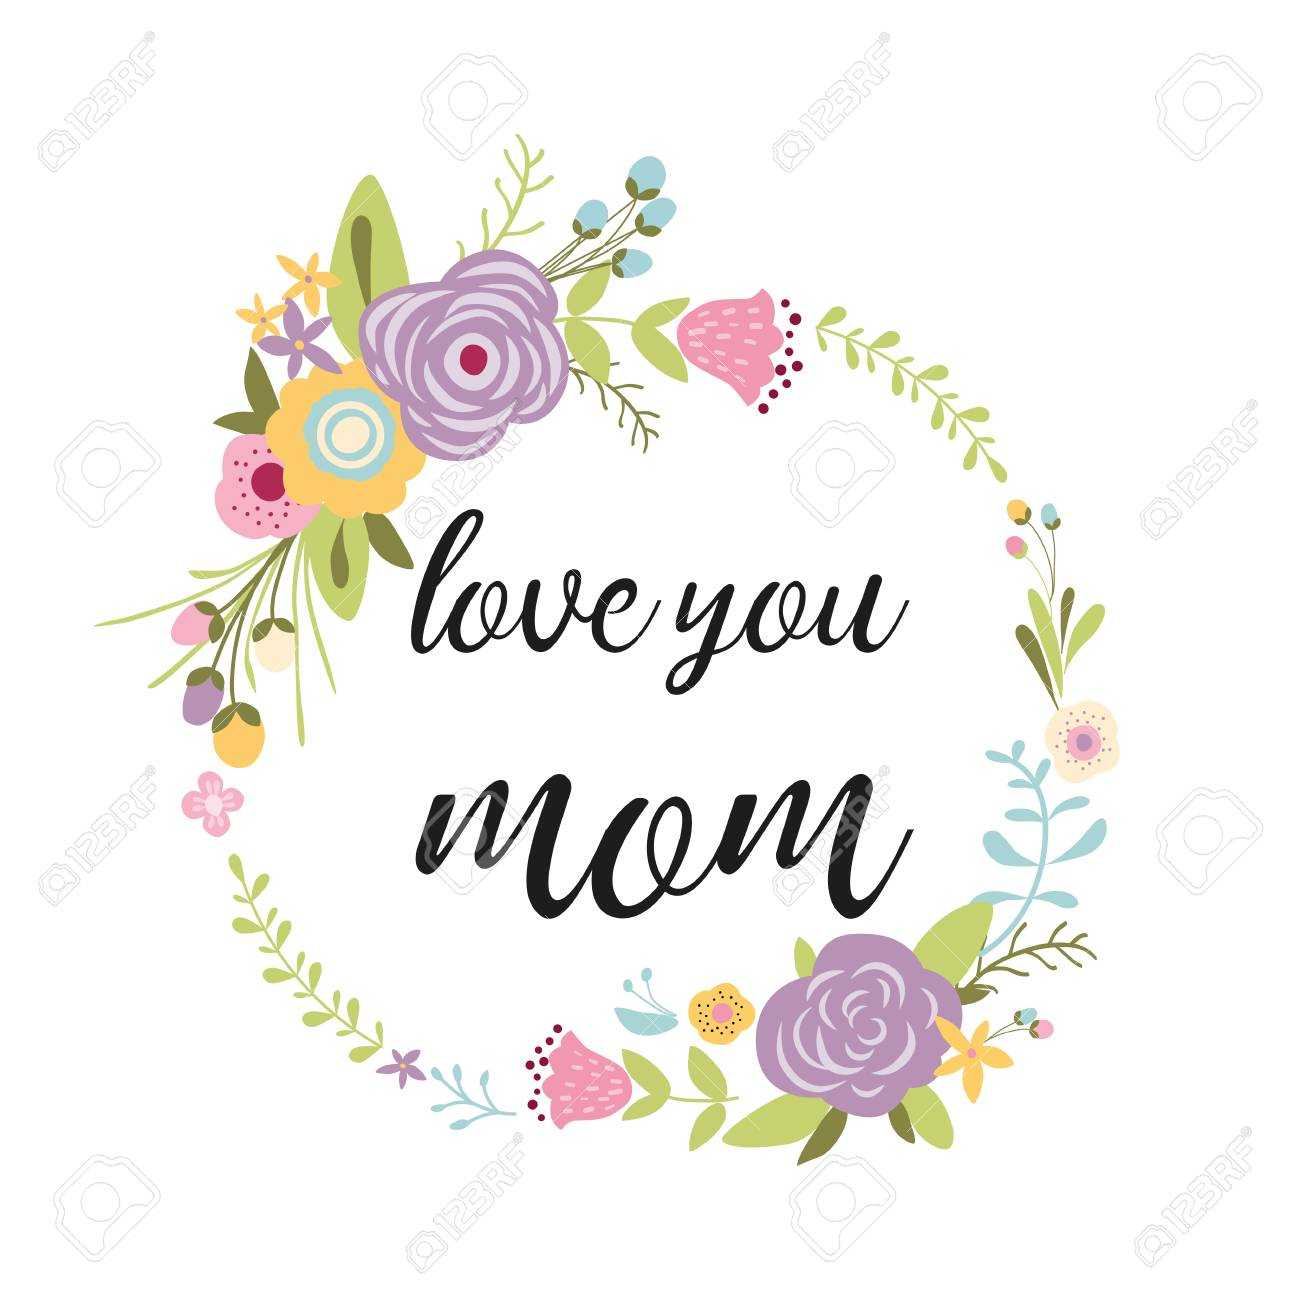 Mothers Day Greeting Card Design Typographic Quote Love You Mom Floral Wreath Made Hand Drawn Green